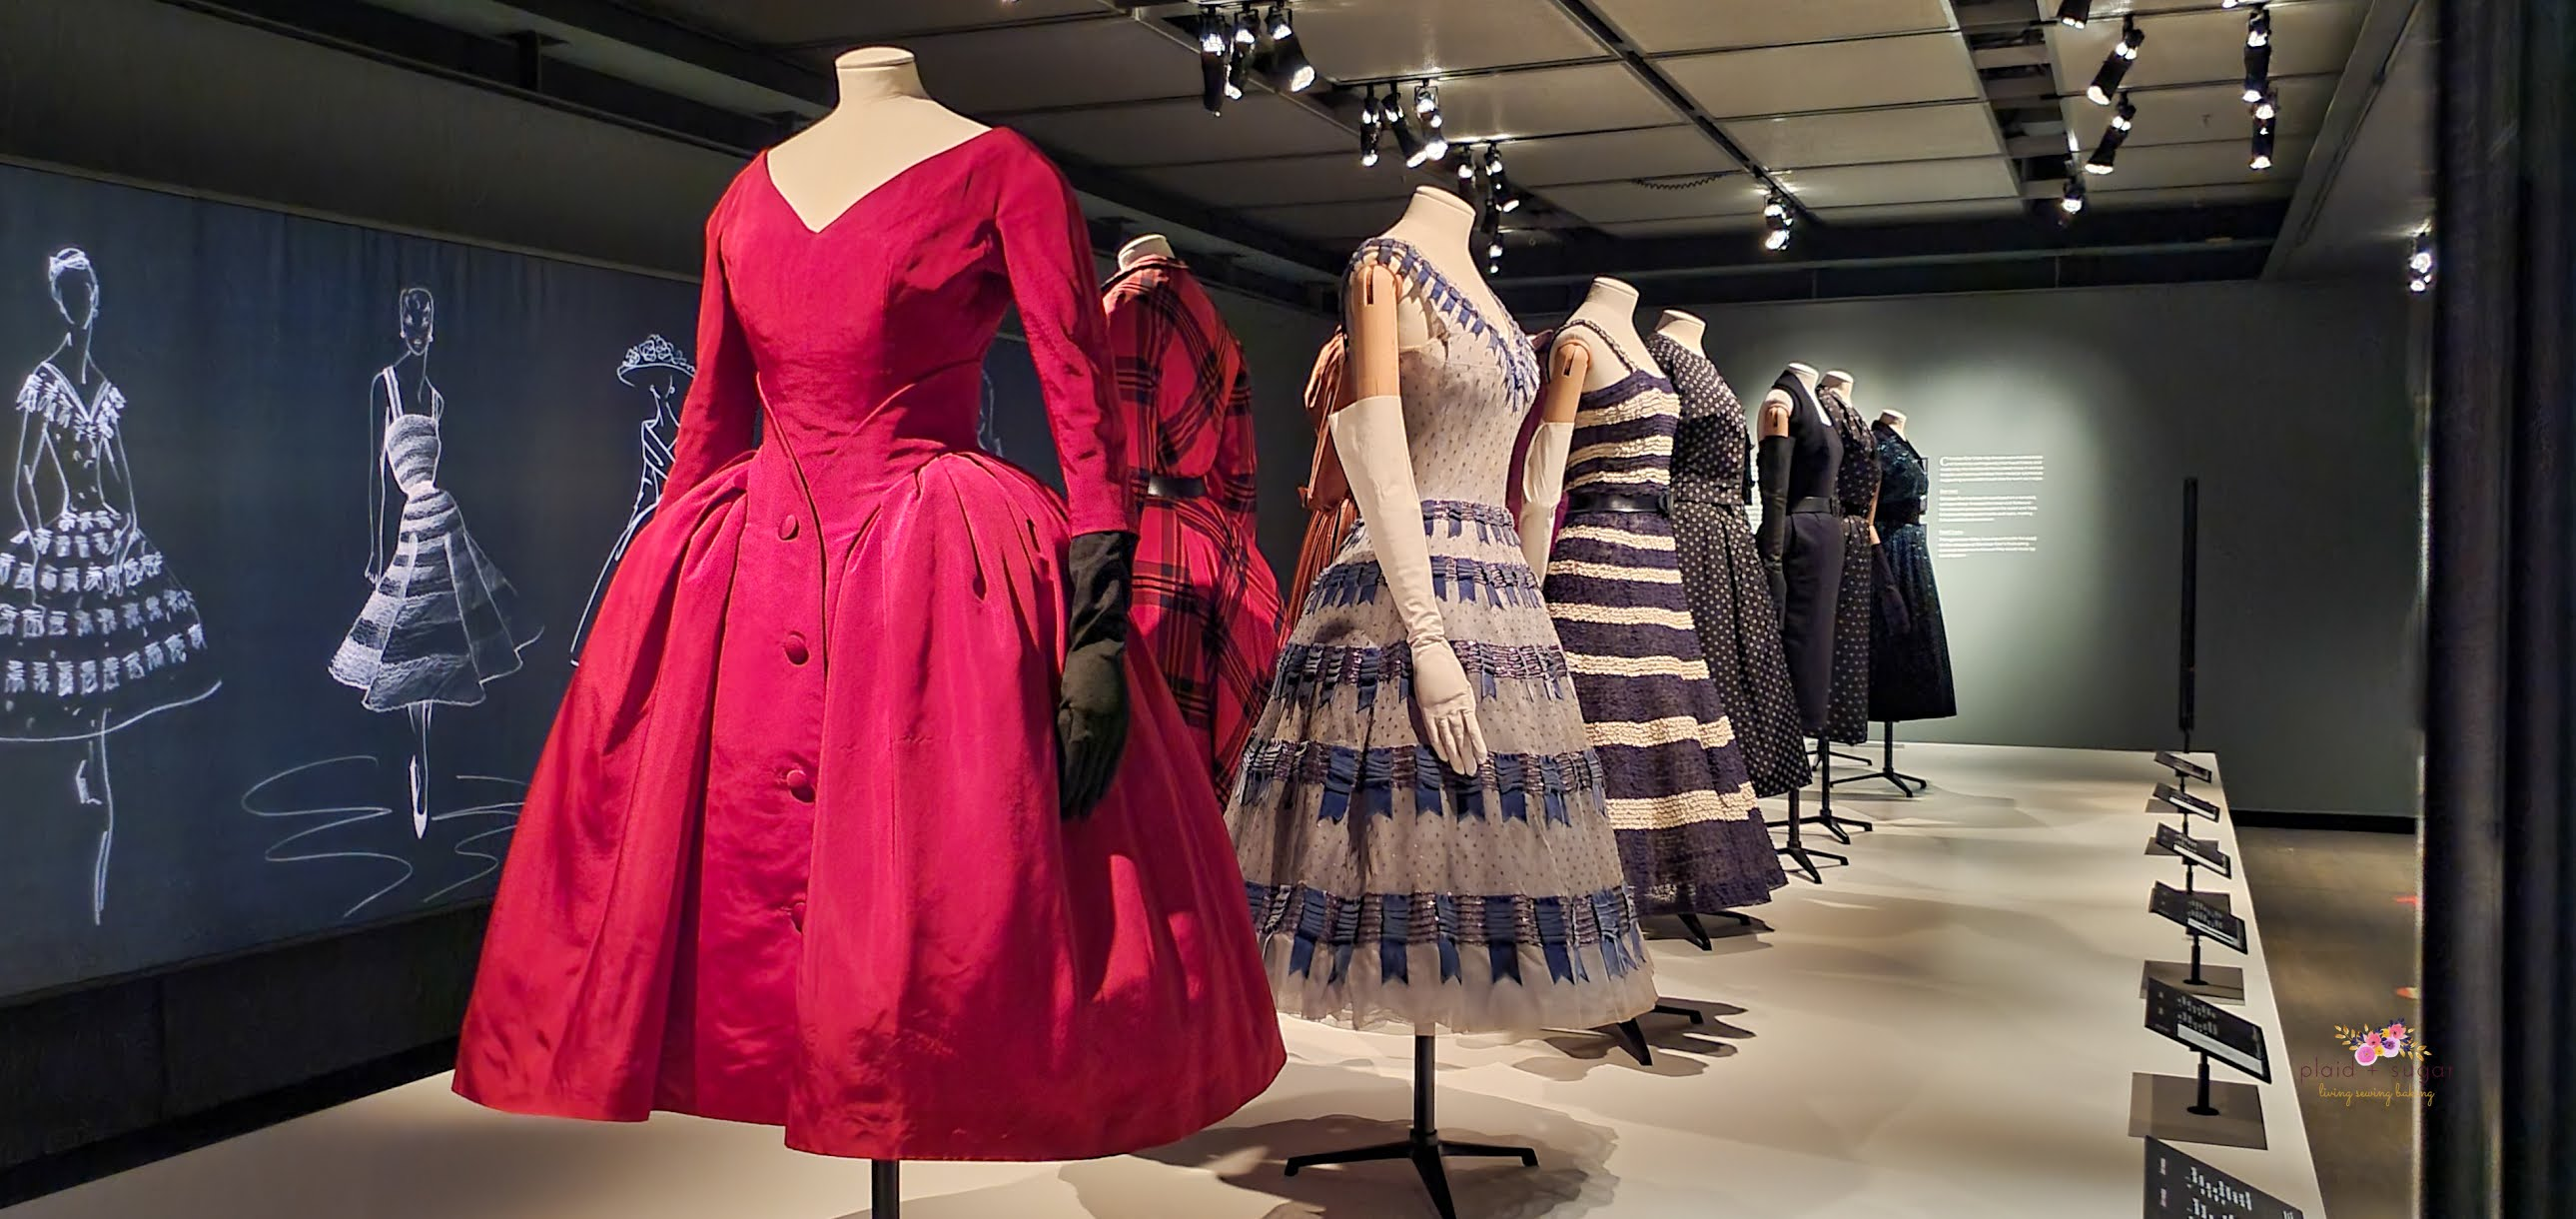 Original Dior Garments at the Exhibit at The McCord Museum post by Plaid and Sugar